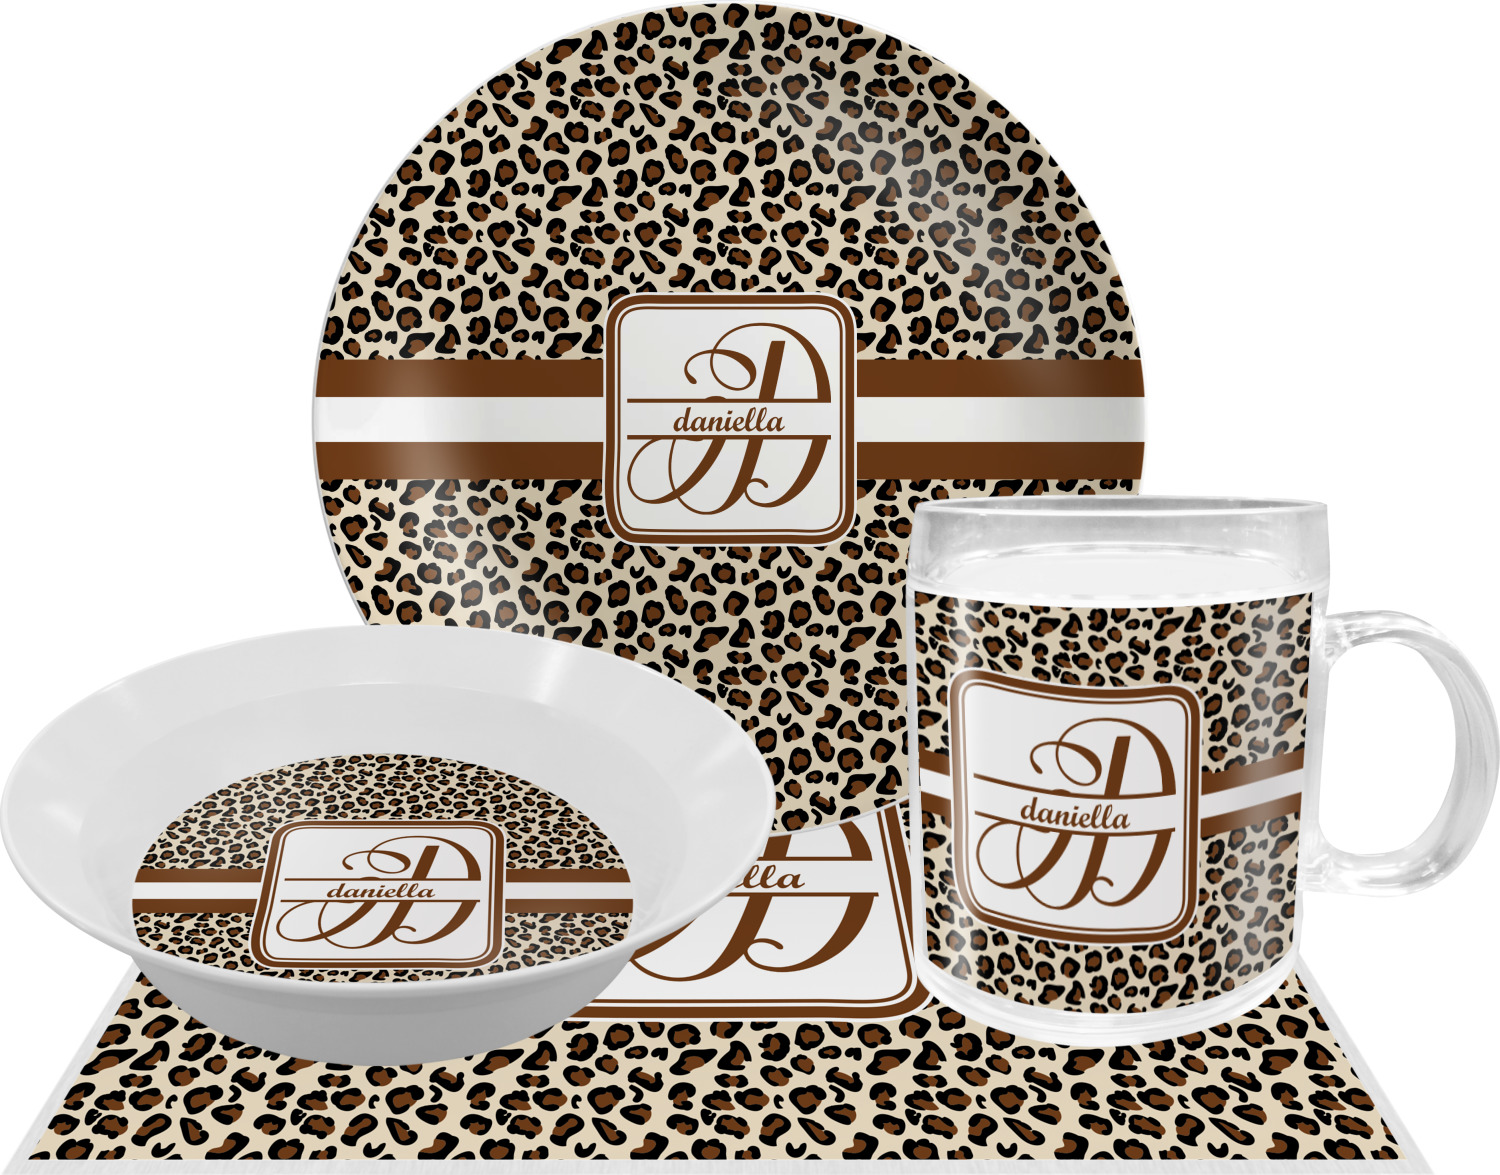 Leopard Print Dinner Set 4 Pc Personalized